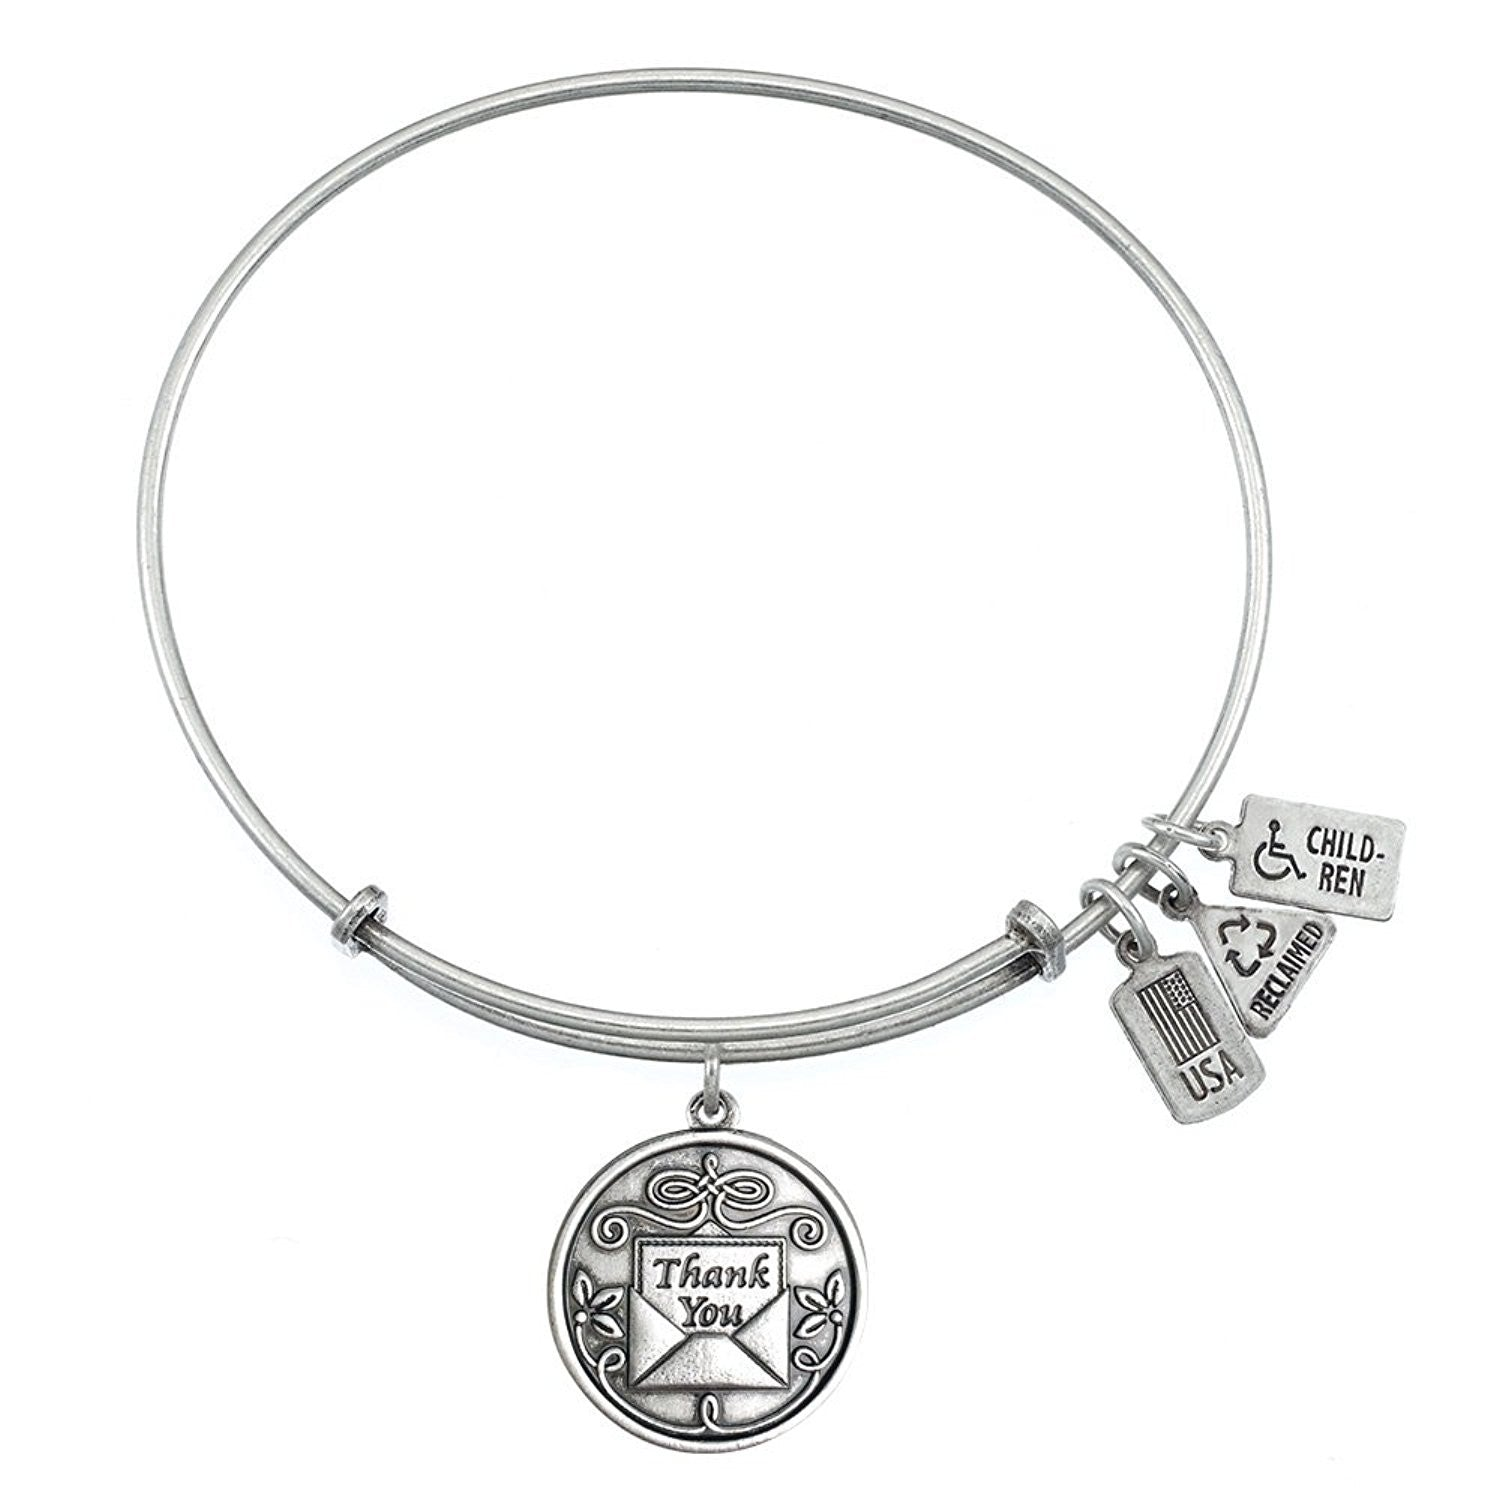 Wind and Fire Thank You Charm Bangle Bracelet